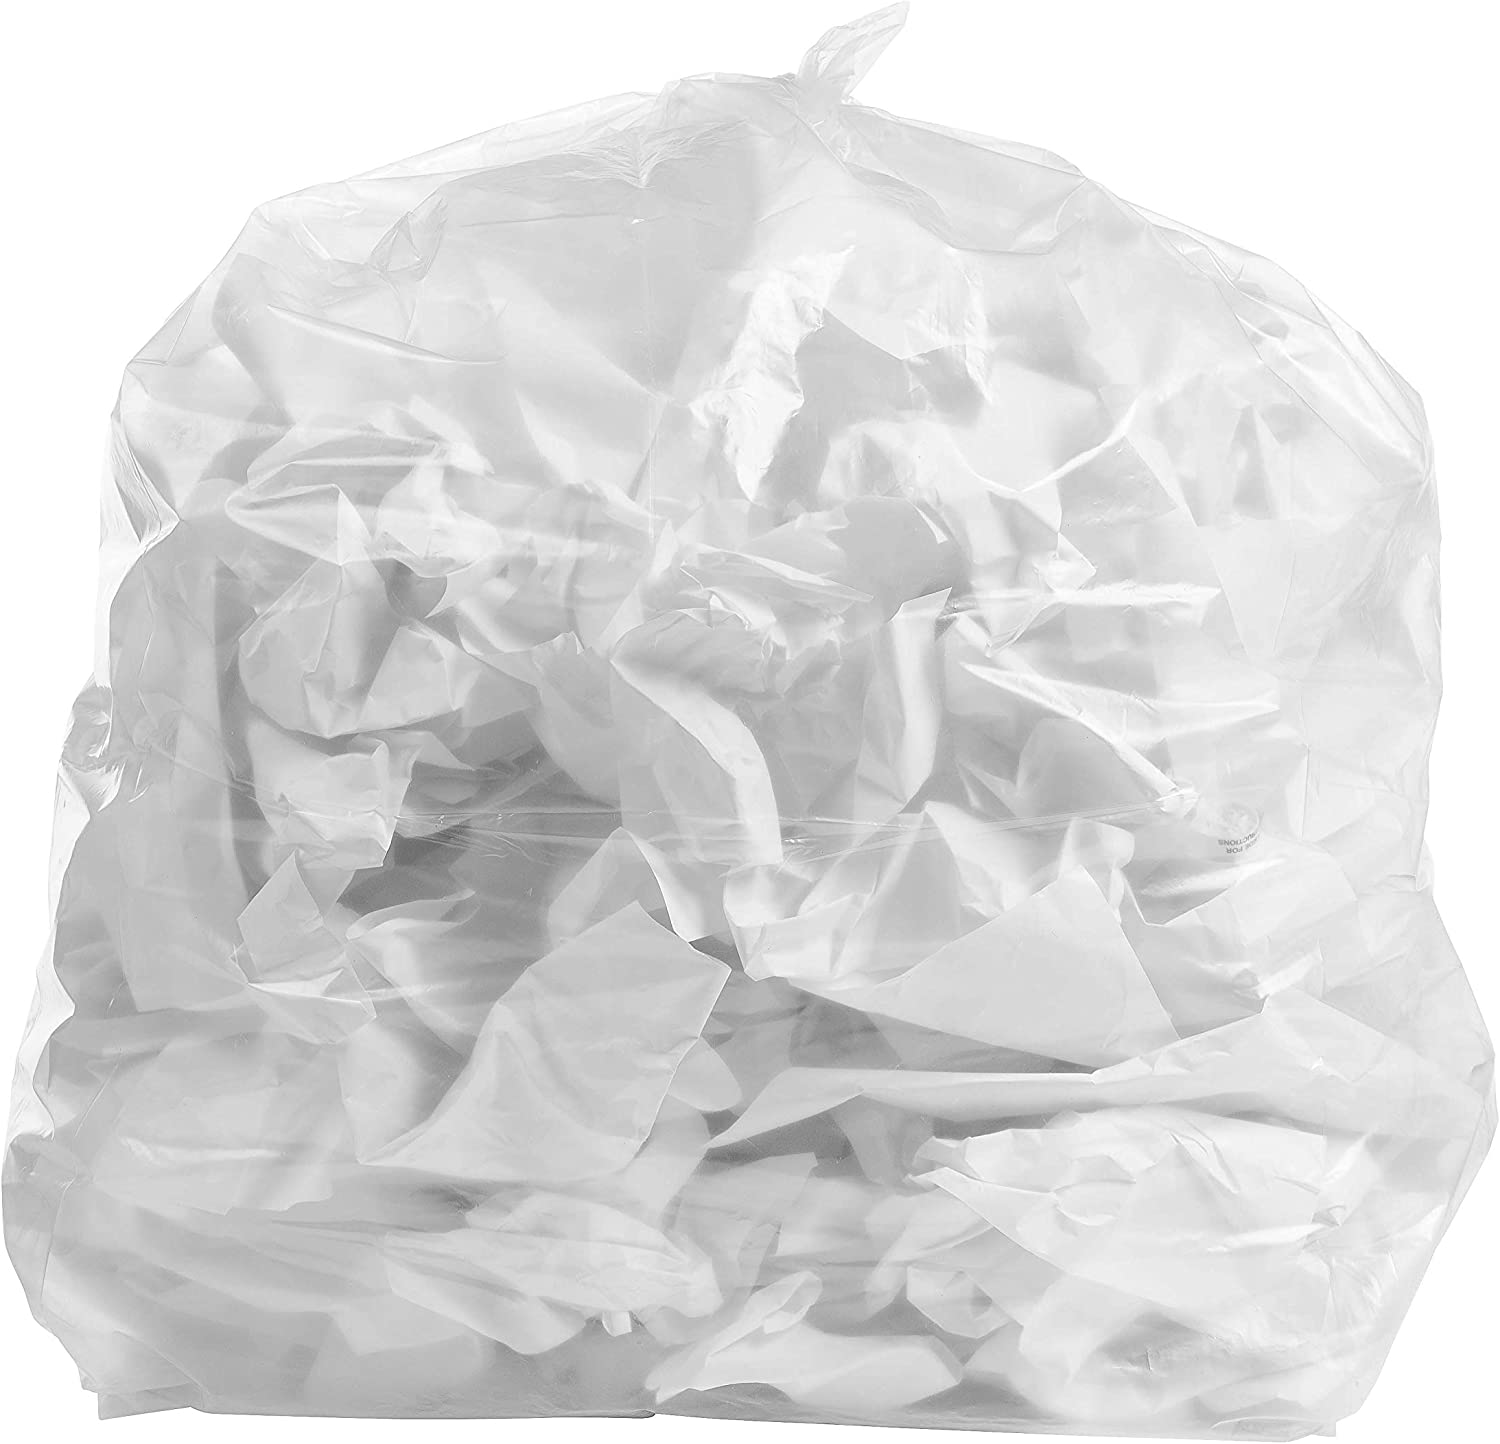 Don't miss the campaign PlasticMill 7-10 Gallon Clear Garbage Discount is also underway Bag 24x23 1 C MIL 250